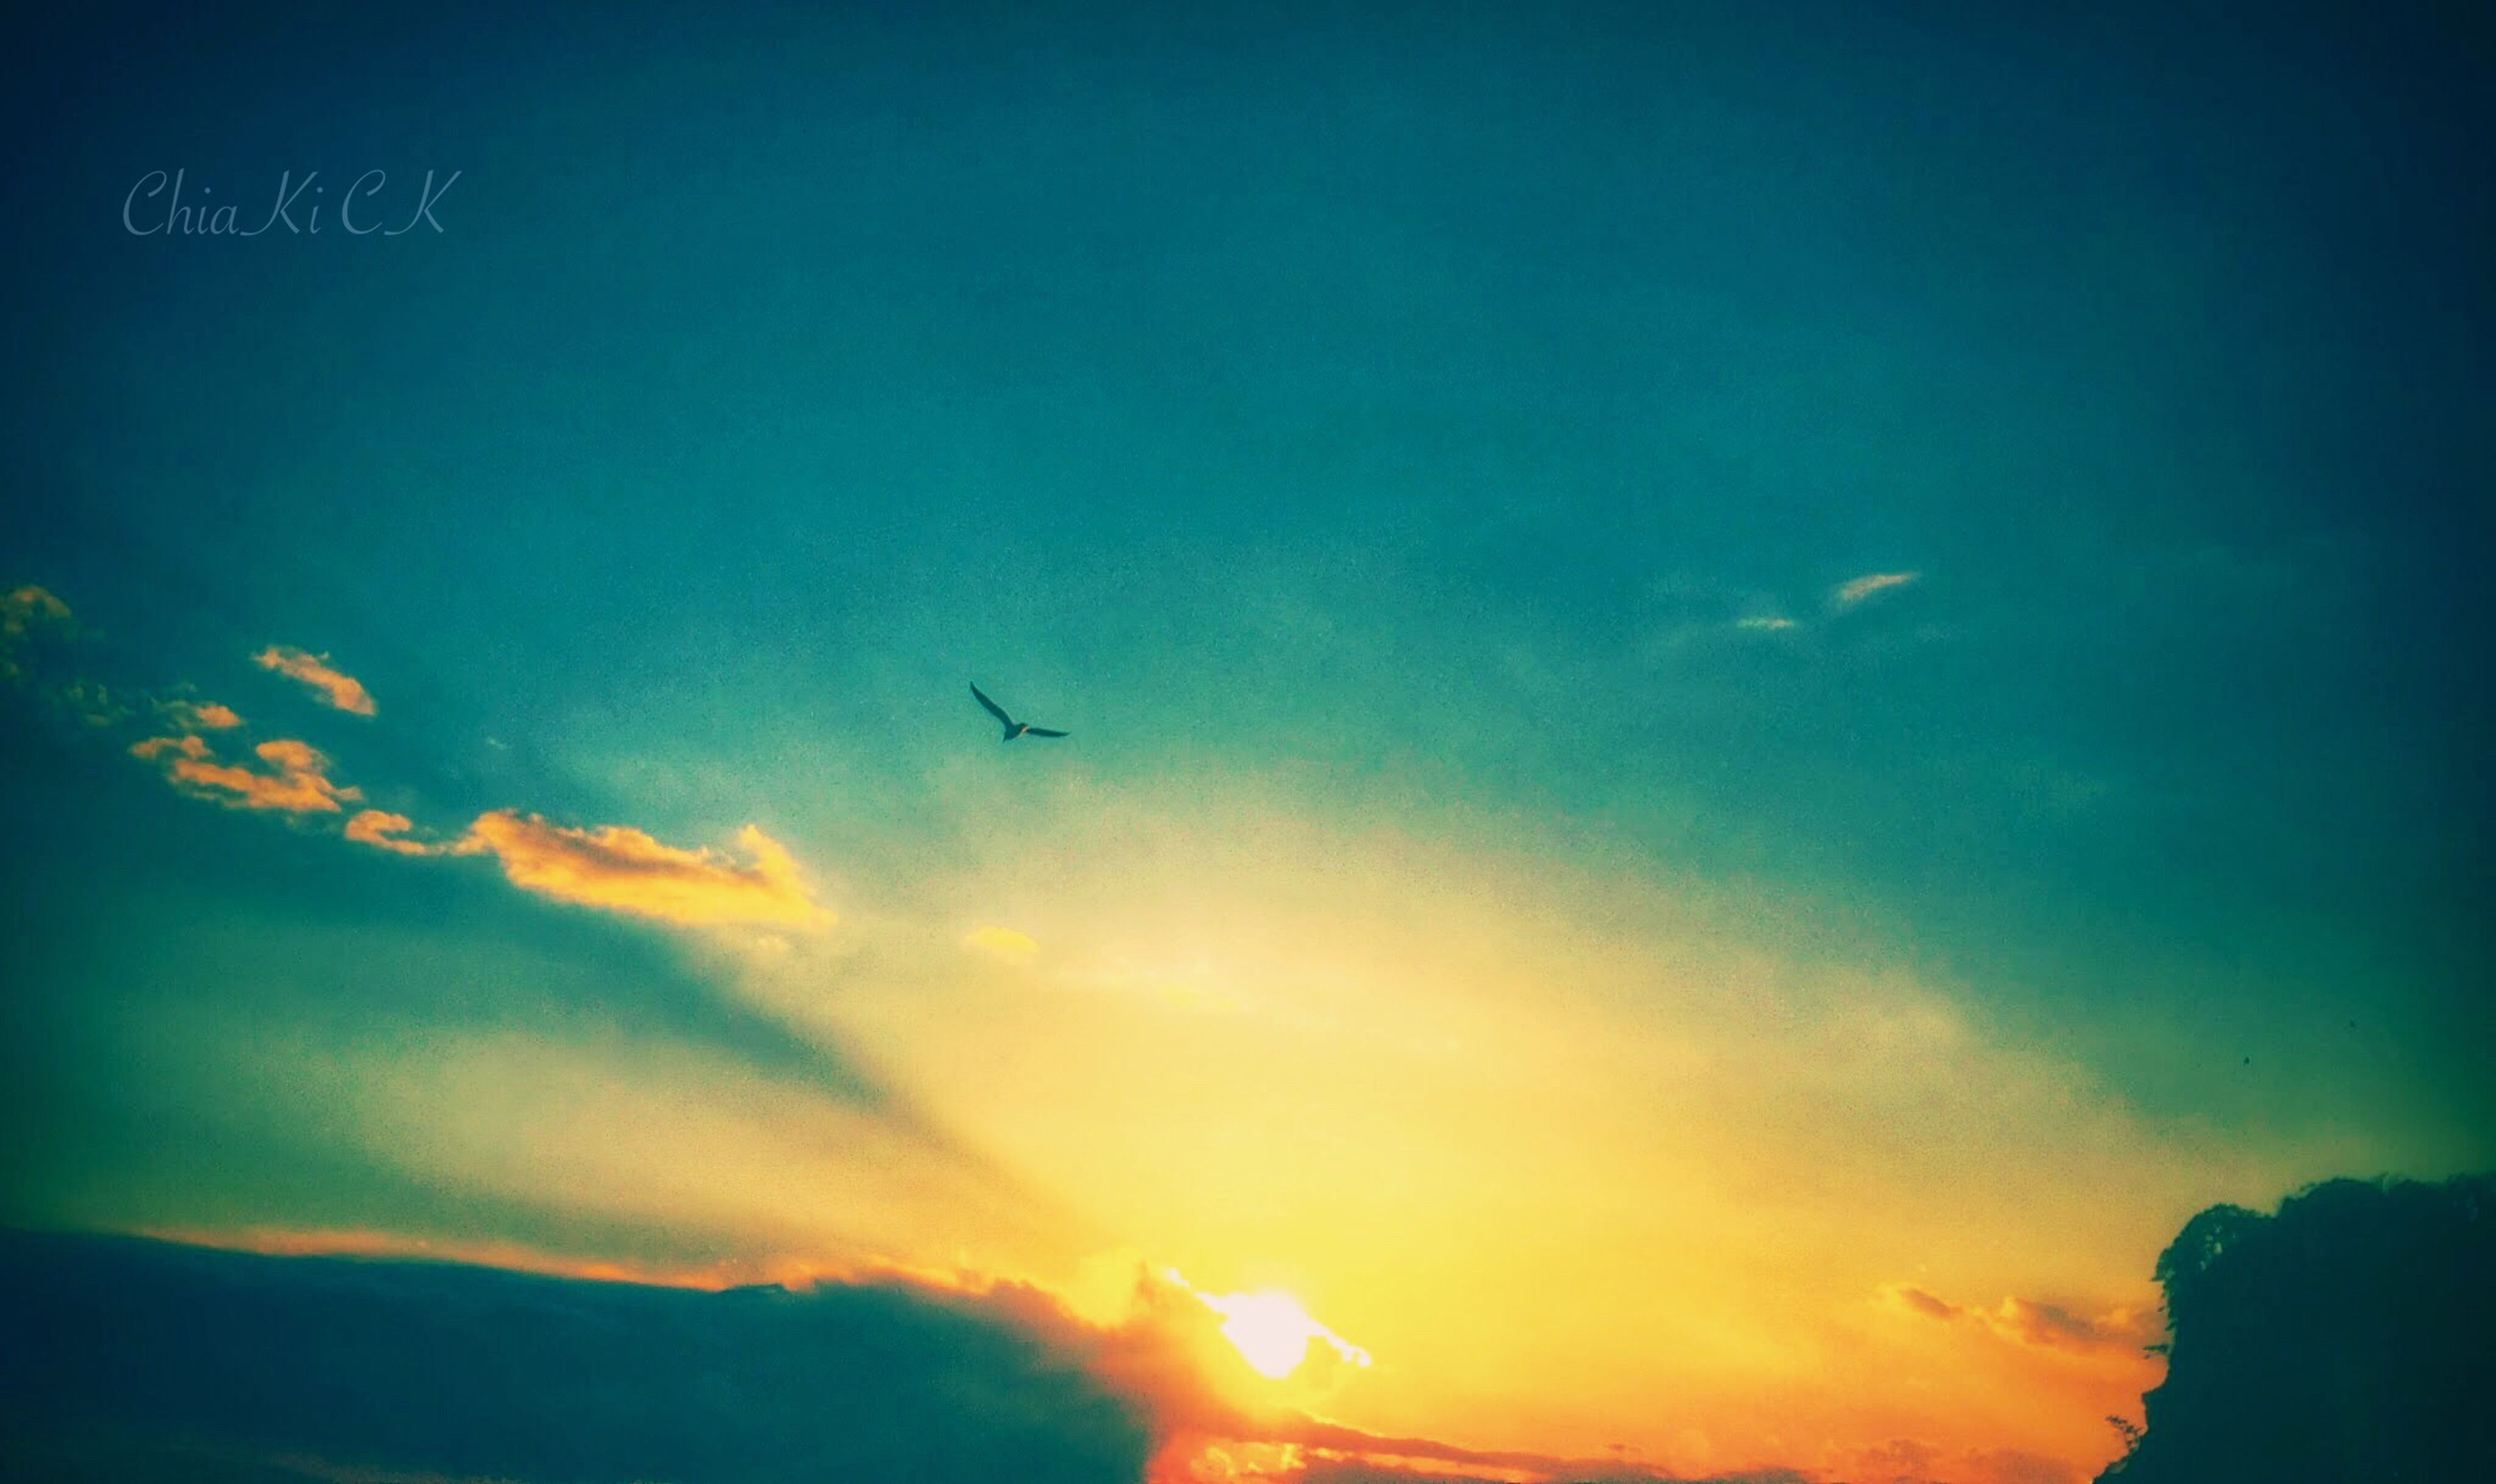 flying, sunset, sky, silhouette, low angle view, bird, cloud - sky, animal themes, beauty in nature, scenics, mid-air, nature, airplane, wildlife, transportation, dusk, cloud, tranquility, animals in the wild, blue